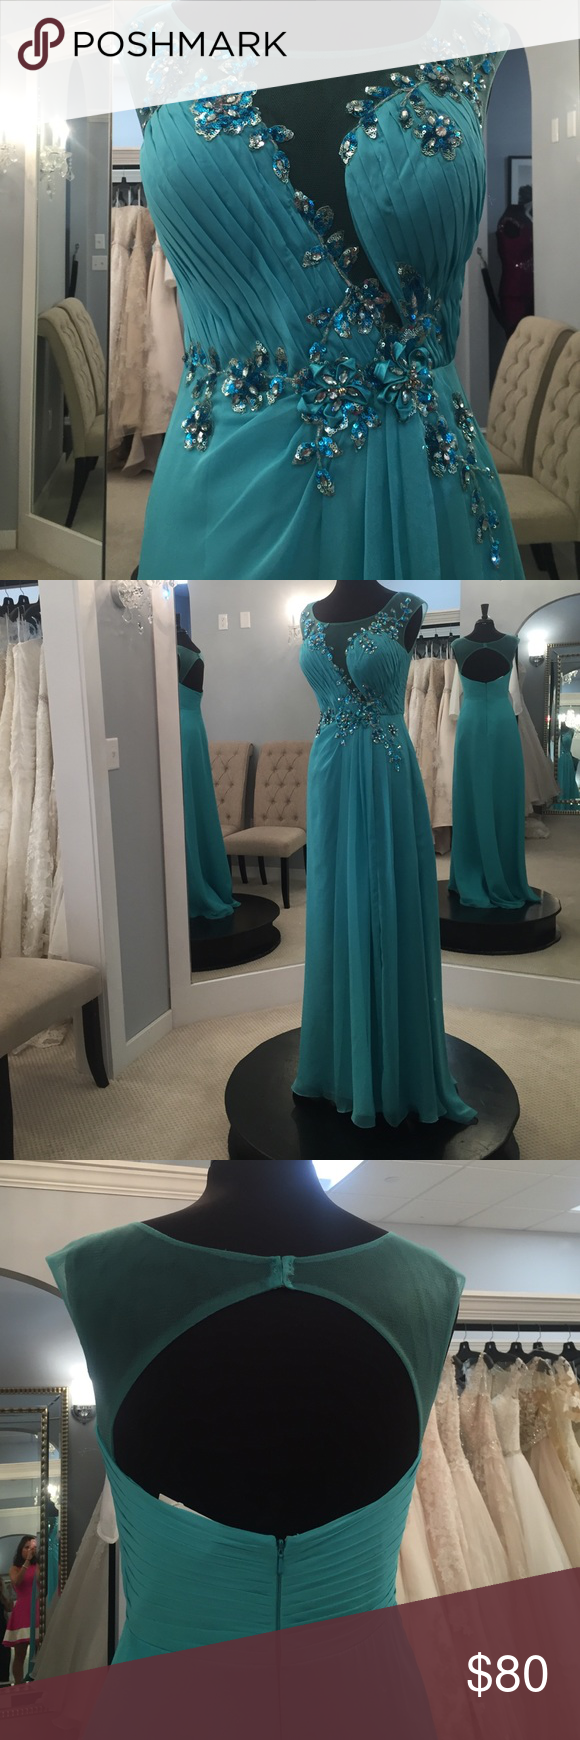 Brand new prom gown Brand new prom gown Dresses Prom